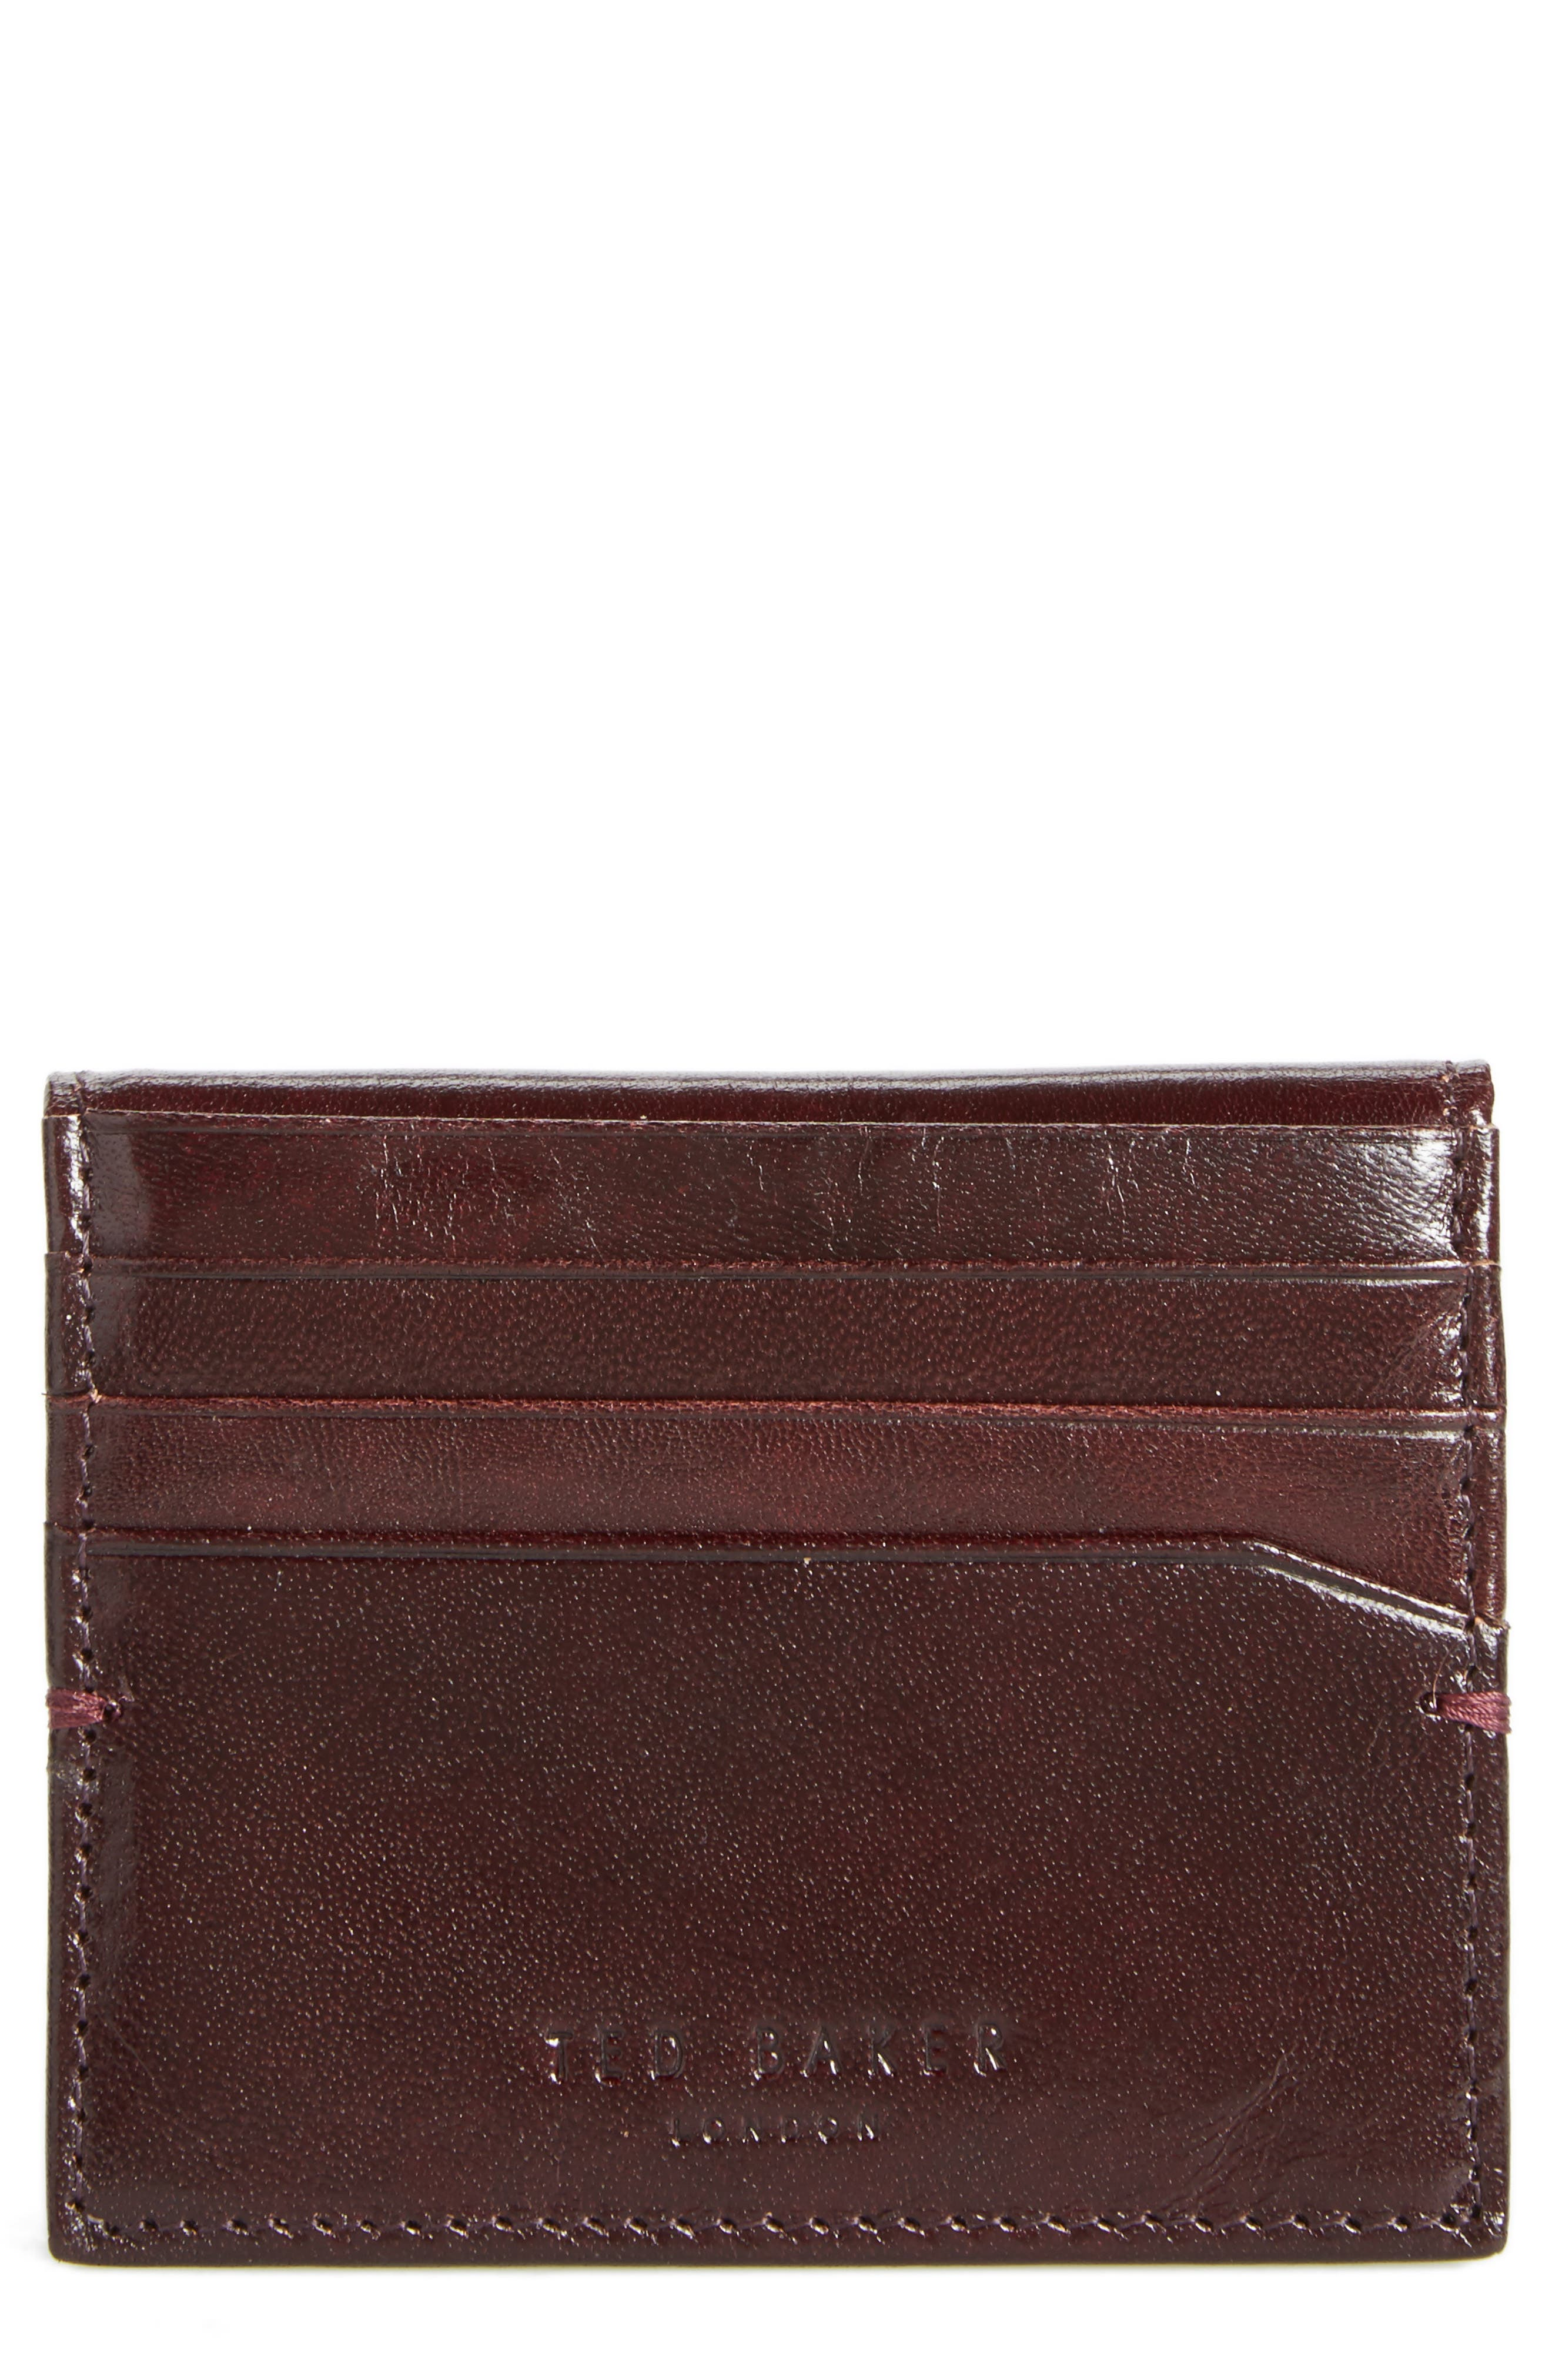 TED BAKER Brights Leather Card Case in Brown